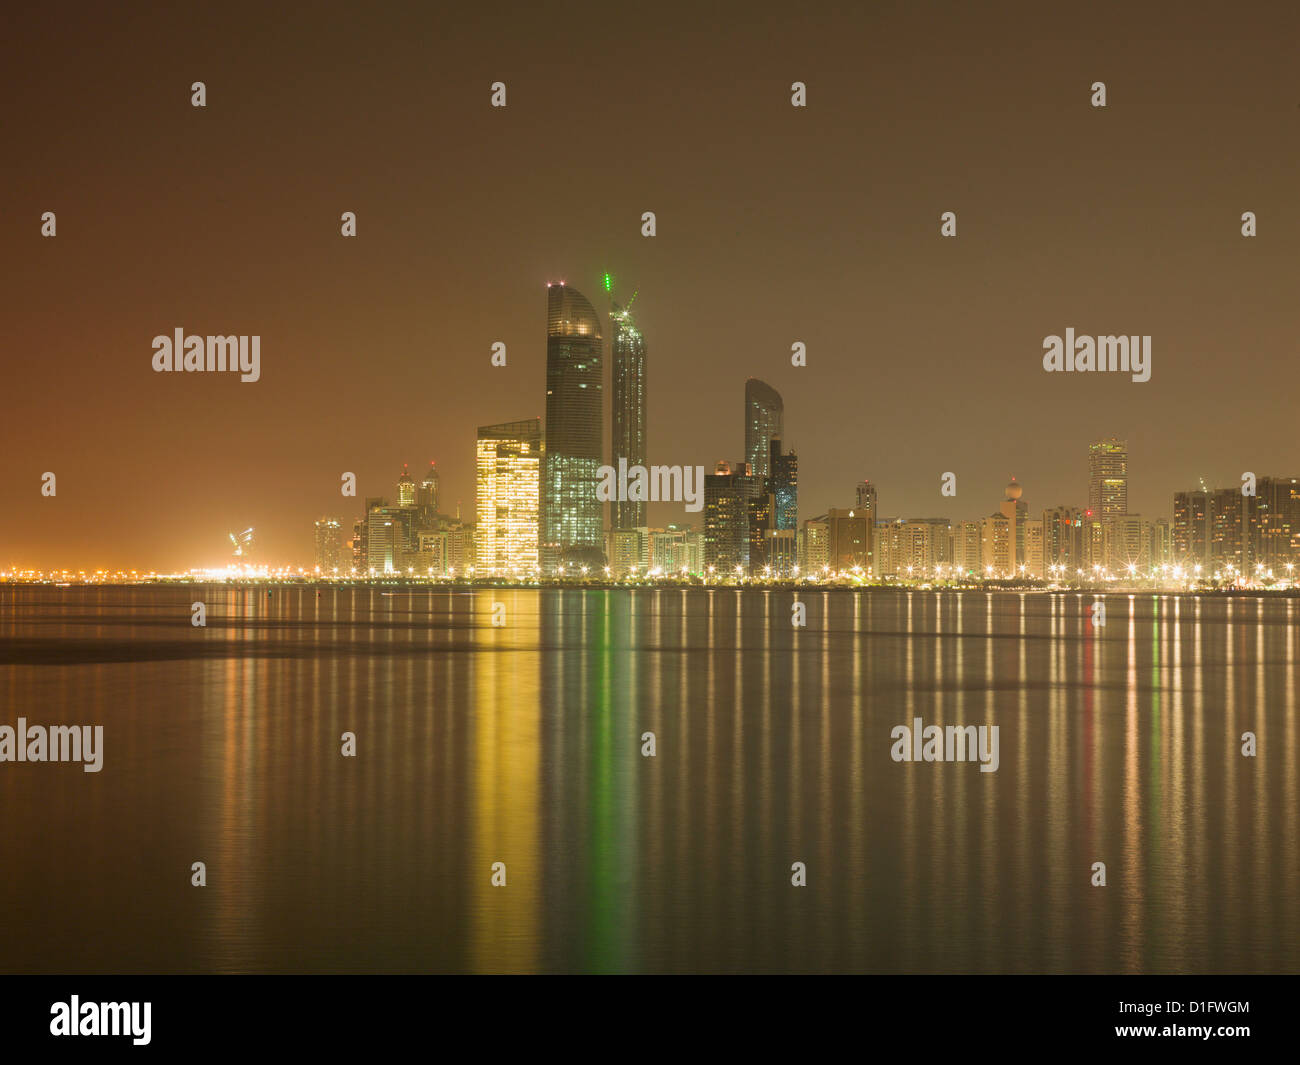 Abu Dhabi, United Arab Emirates, Middle East Stock Photo